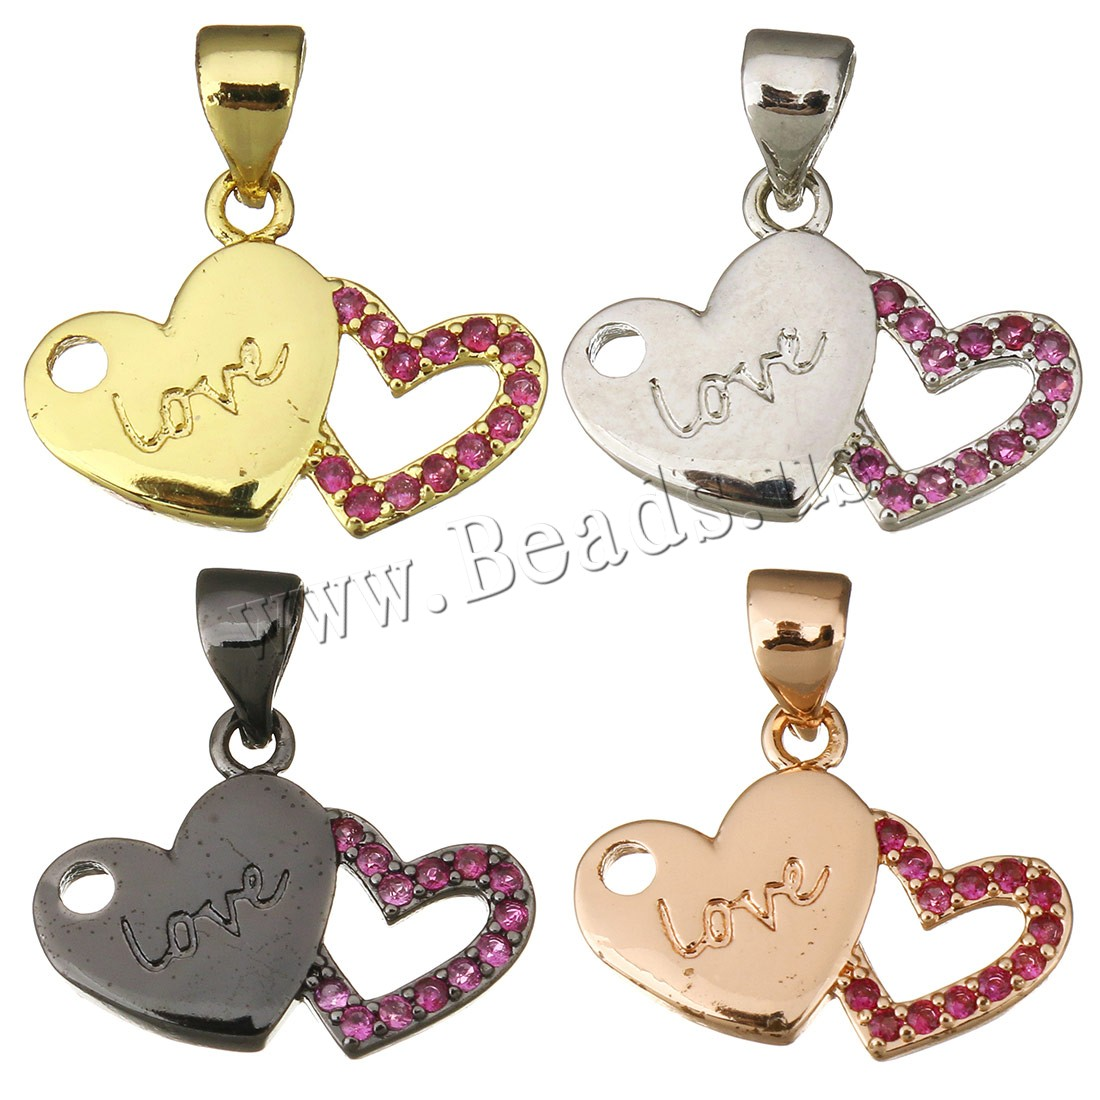 Buy Cubic Zirconia Micro Pave Brass Pendant Heart word love plated micro pave cubic zirconia colors choice 17x12.50x2mm Hole:Approx 3.5x4.5mm 2 Sold Lot